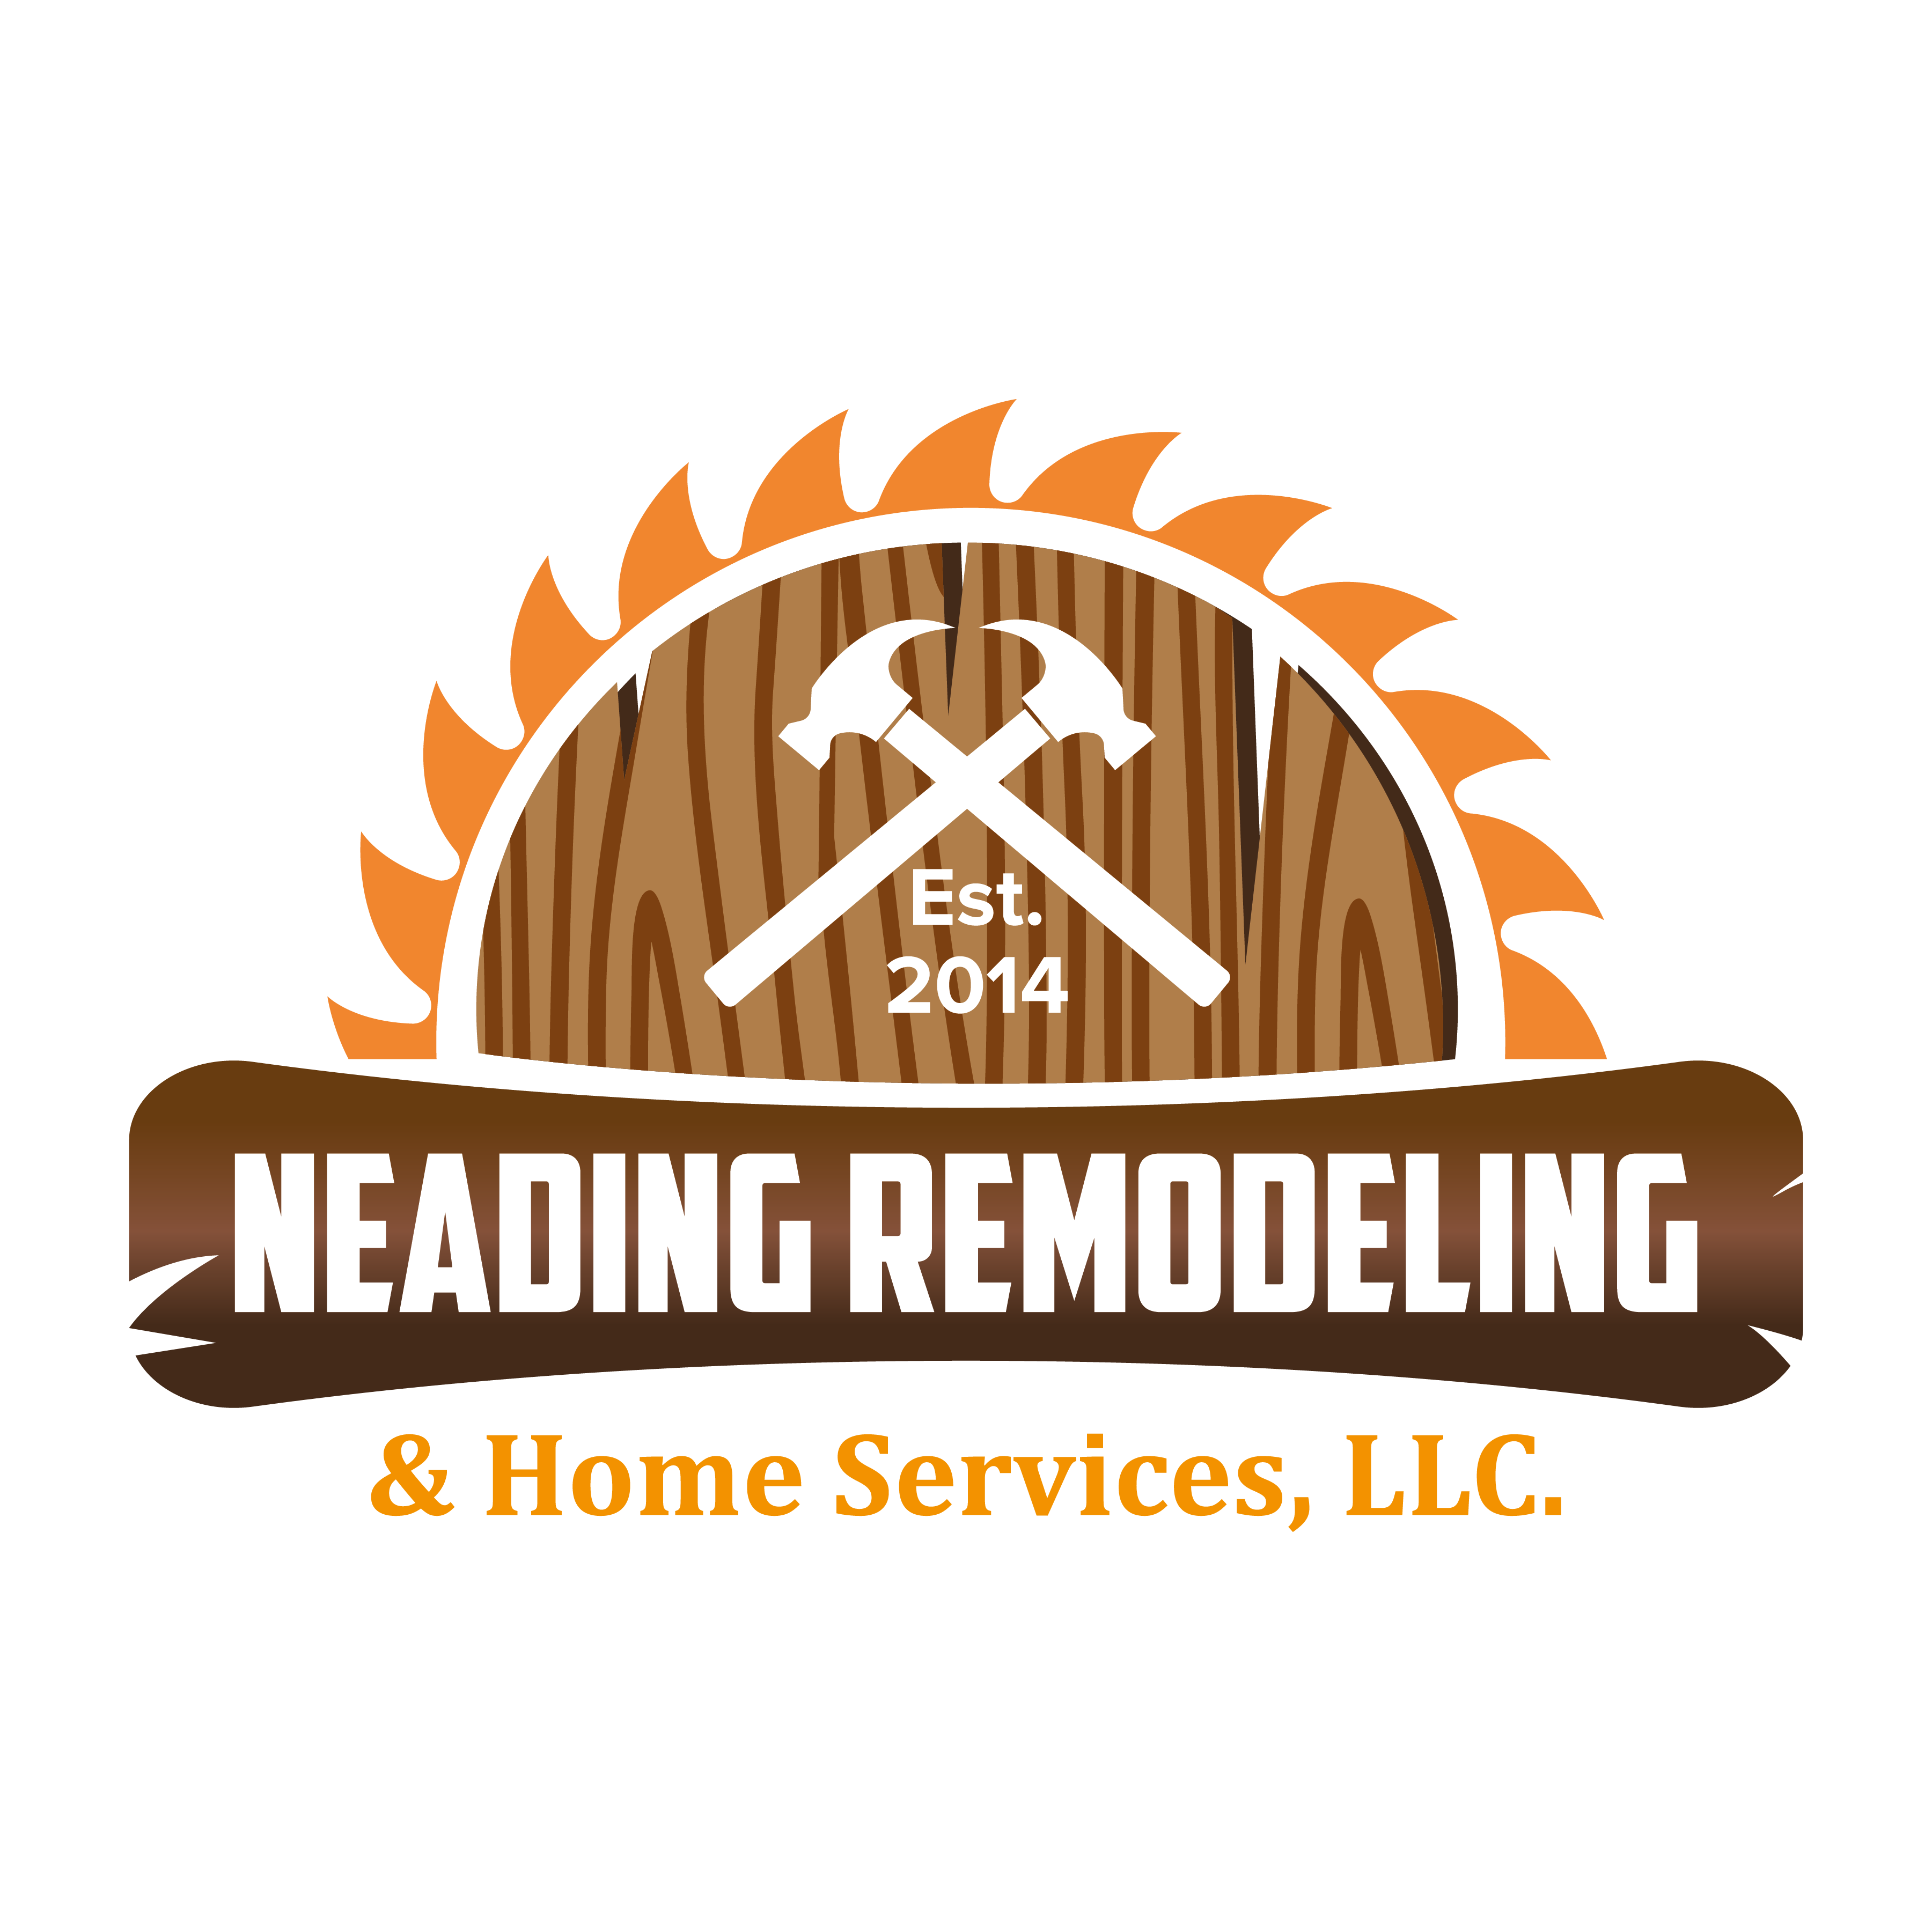 Neading Remodeling & Home Services, LLC logo